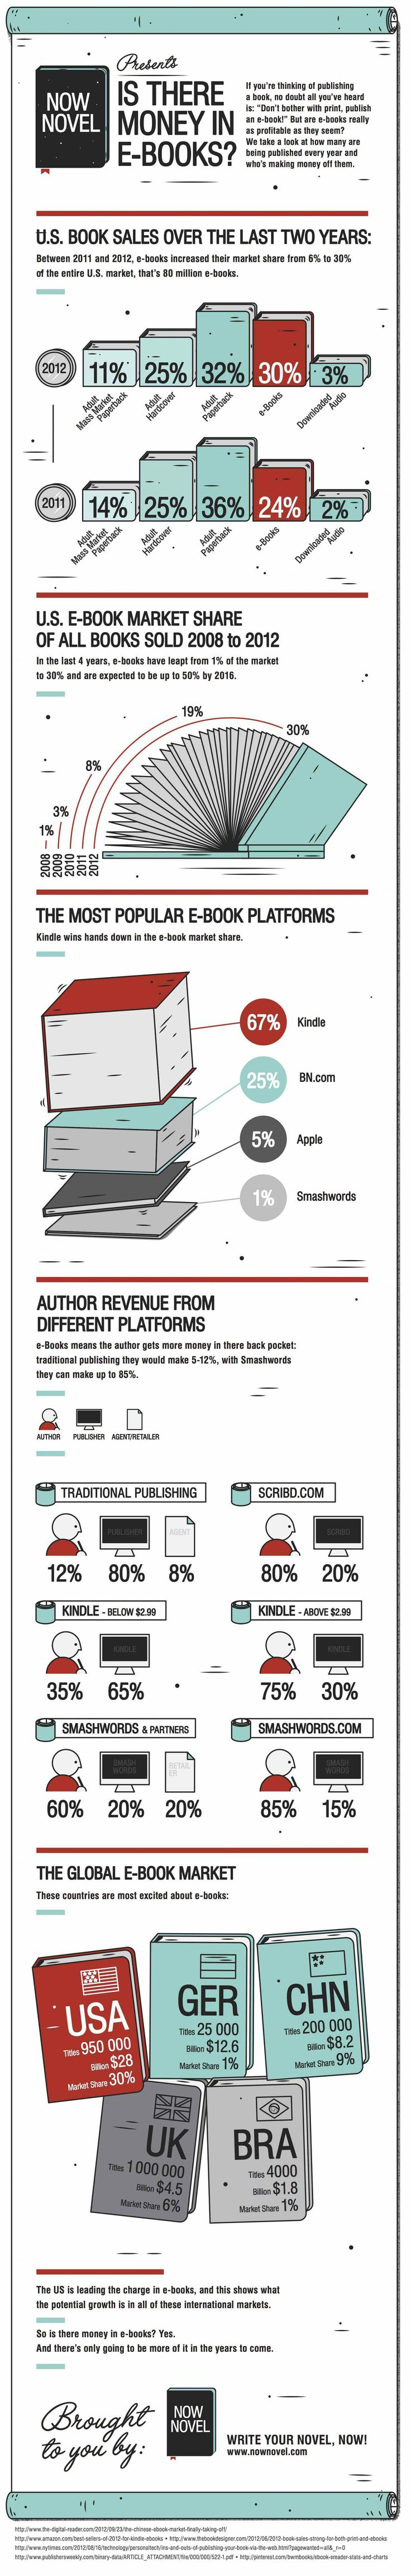 Is There Money In Ebooks? (infographic)